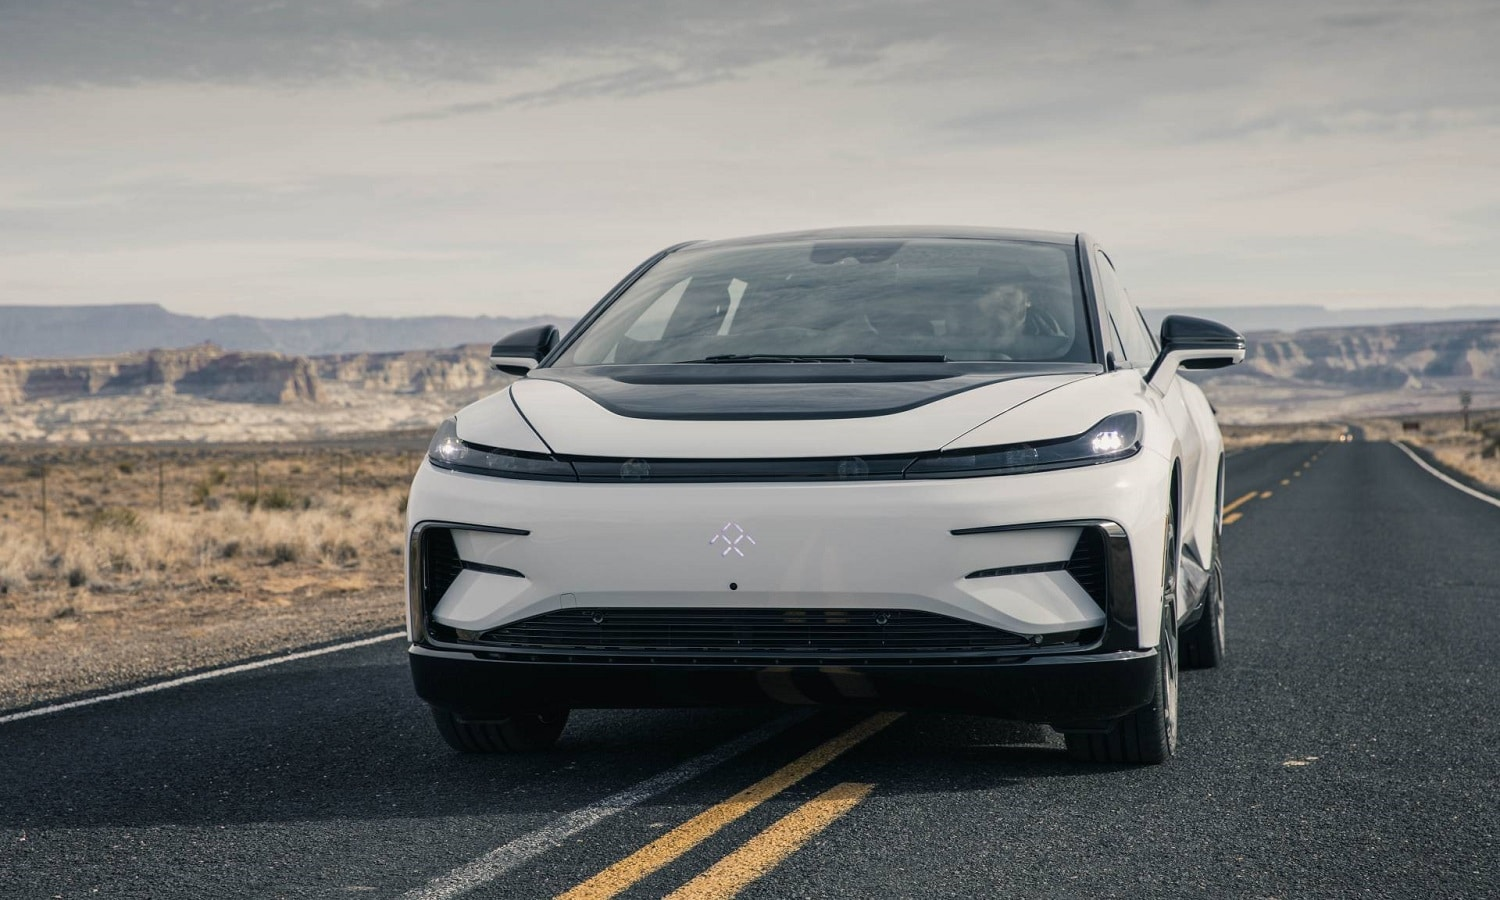 Faraday Future FF 91 de color blanco